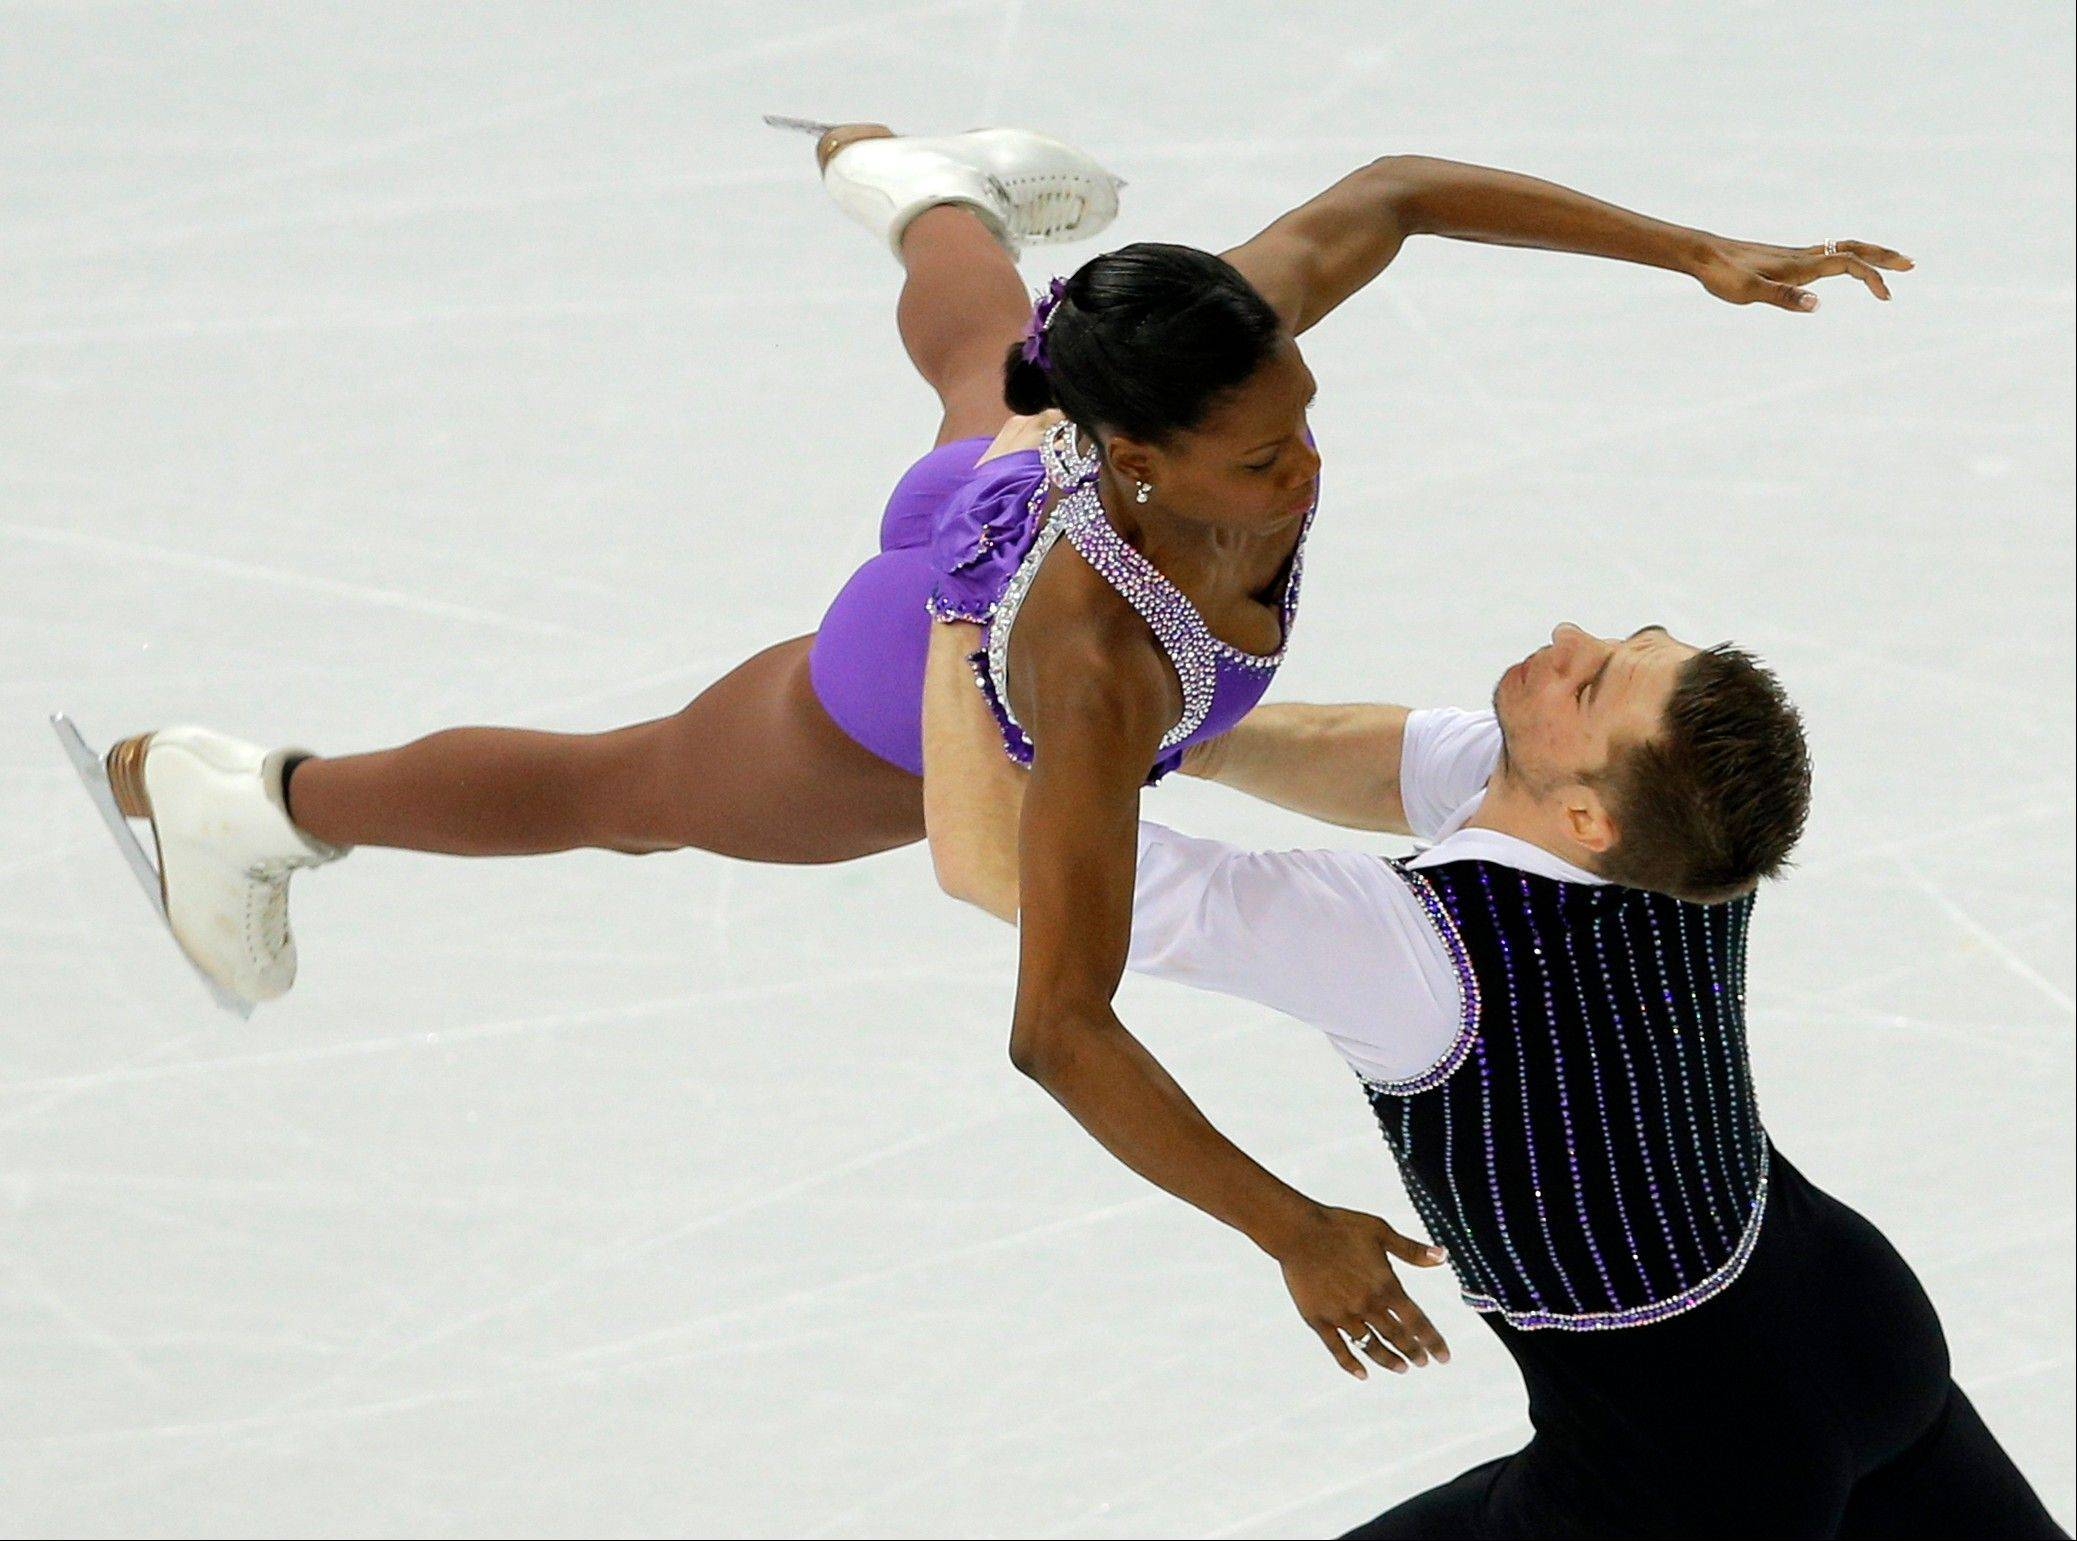 Vanessa James and Morgan Cipres of France compete in the team pairs short program figure skating competition at the Iceberg Skating Palace during the 2014 Winter Olympics, Thursday, Feb. 6, 2014, in Sochi, Russia.